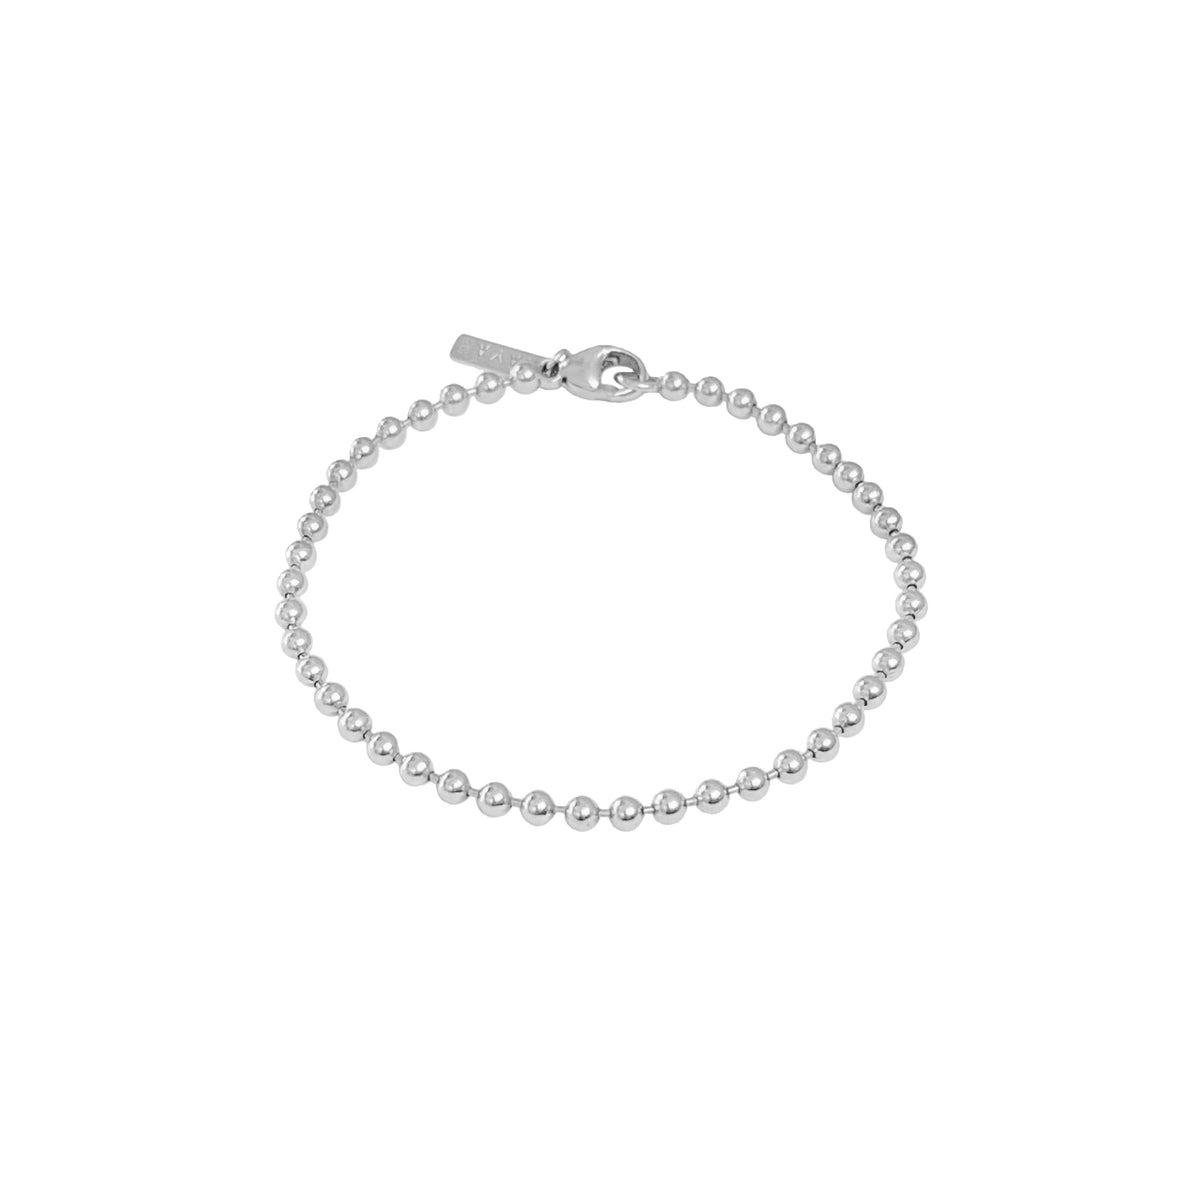 Image of Silver ball chain bracelet